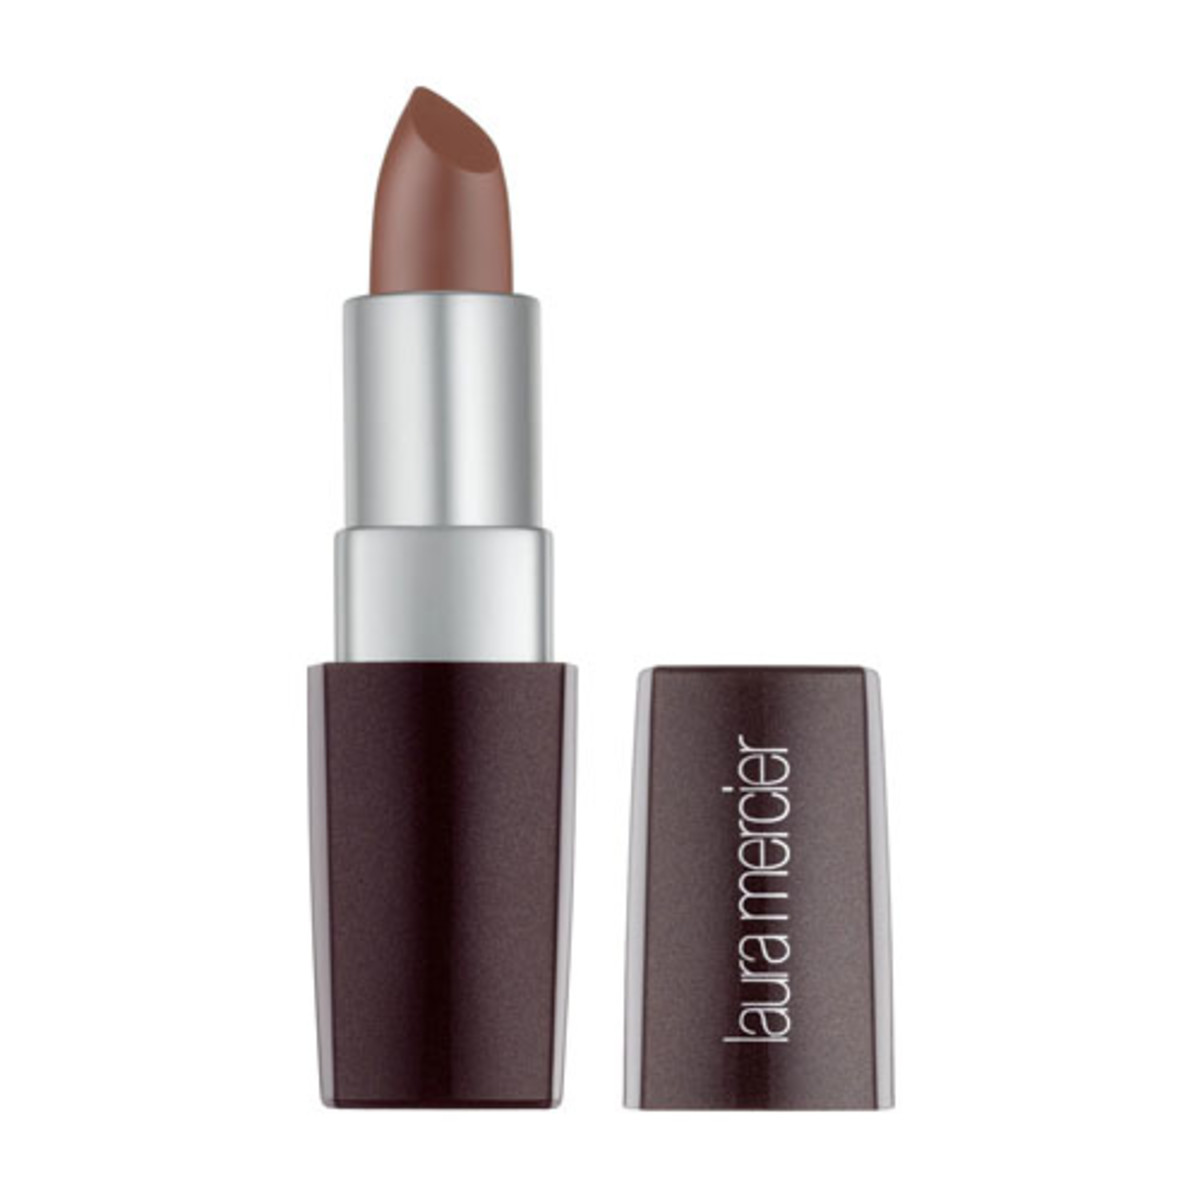 Laura Mercier Creme Lip Colour in Discretion